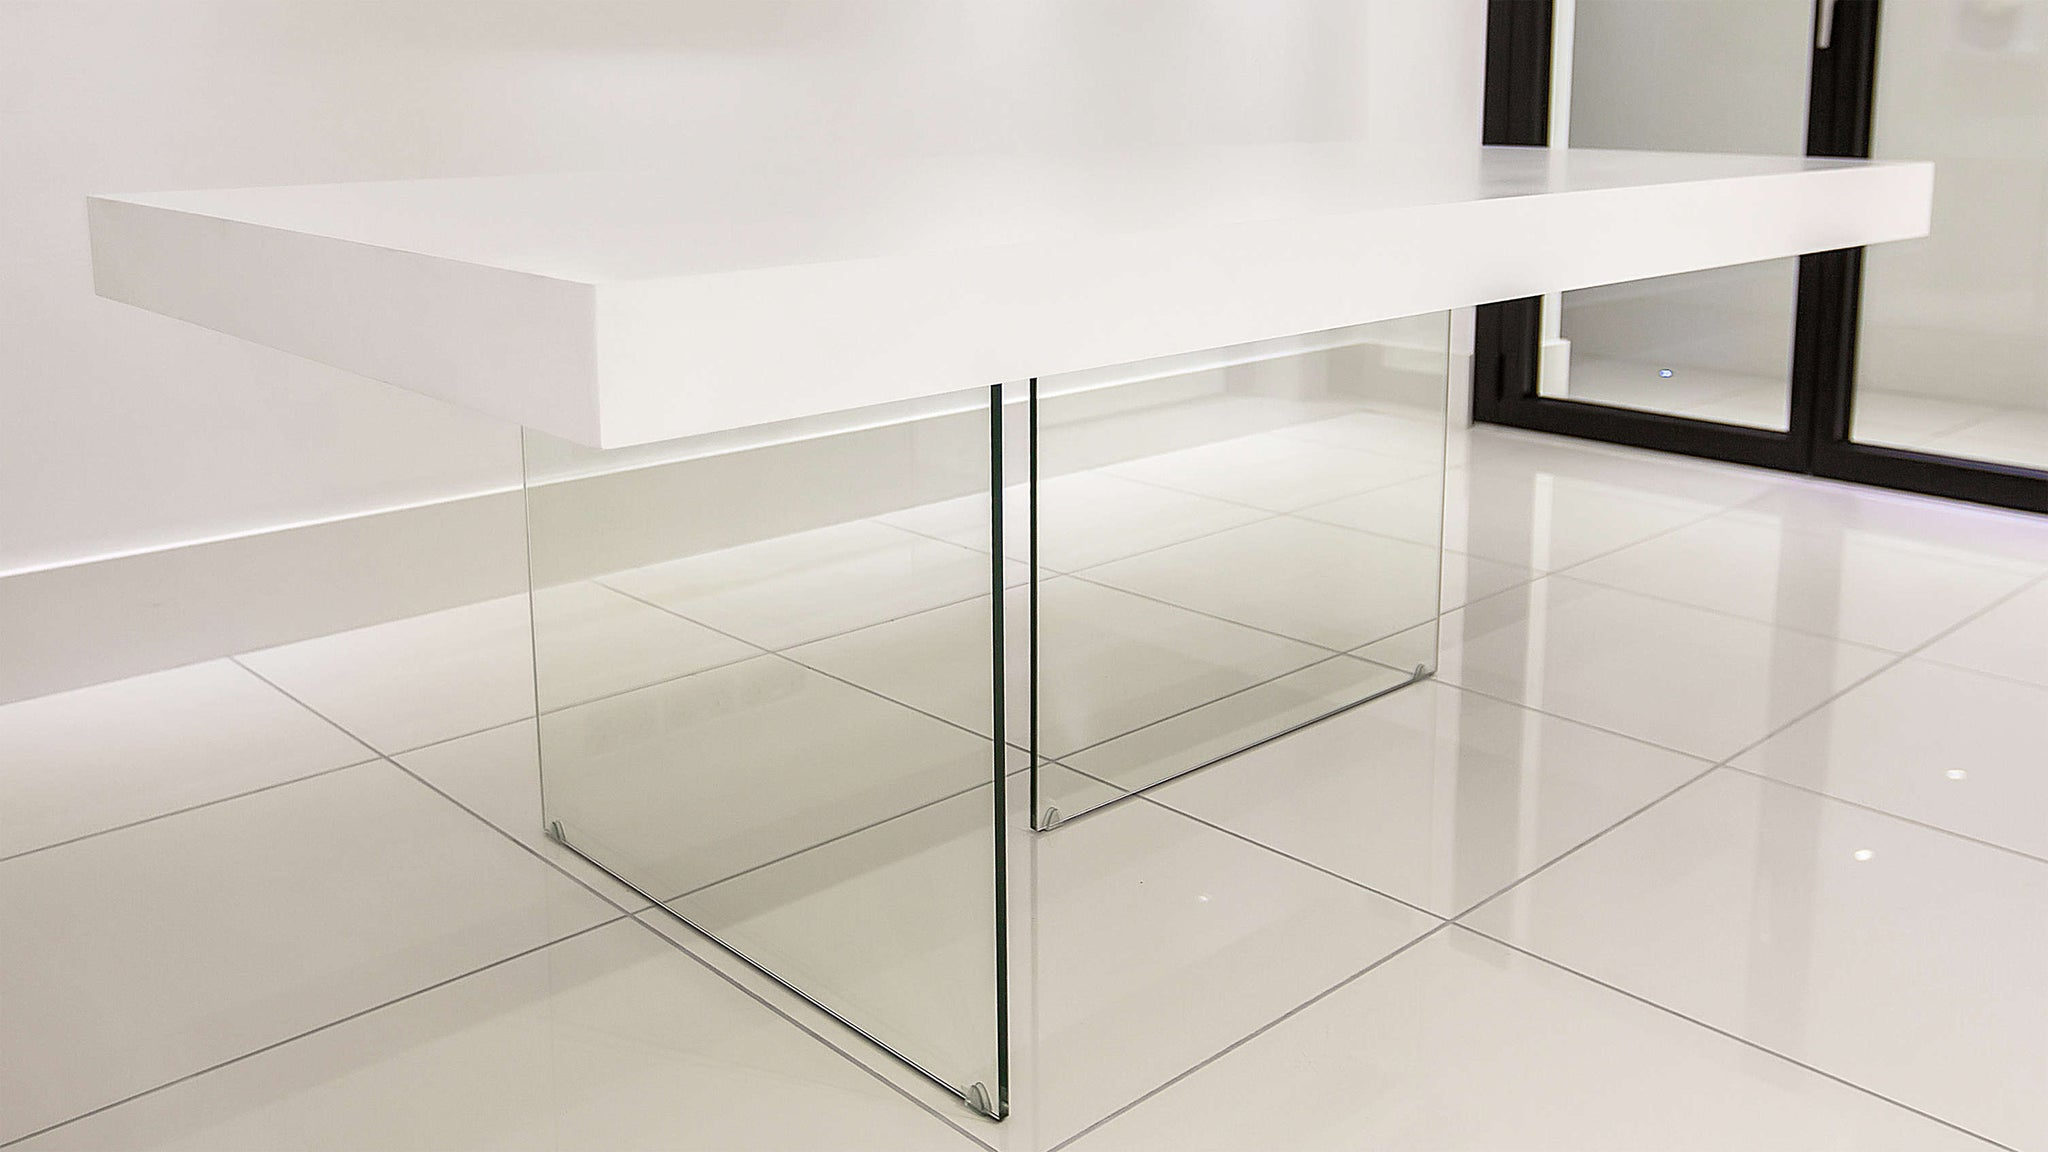 4-6 Seater White Dining Table with Glass Legs